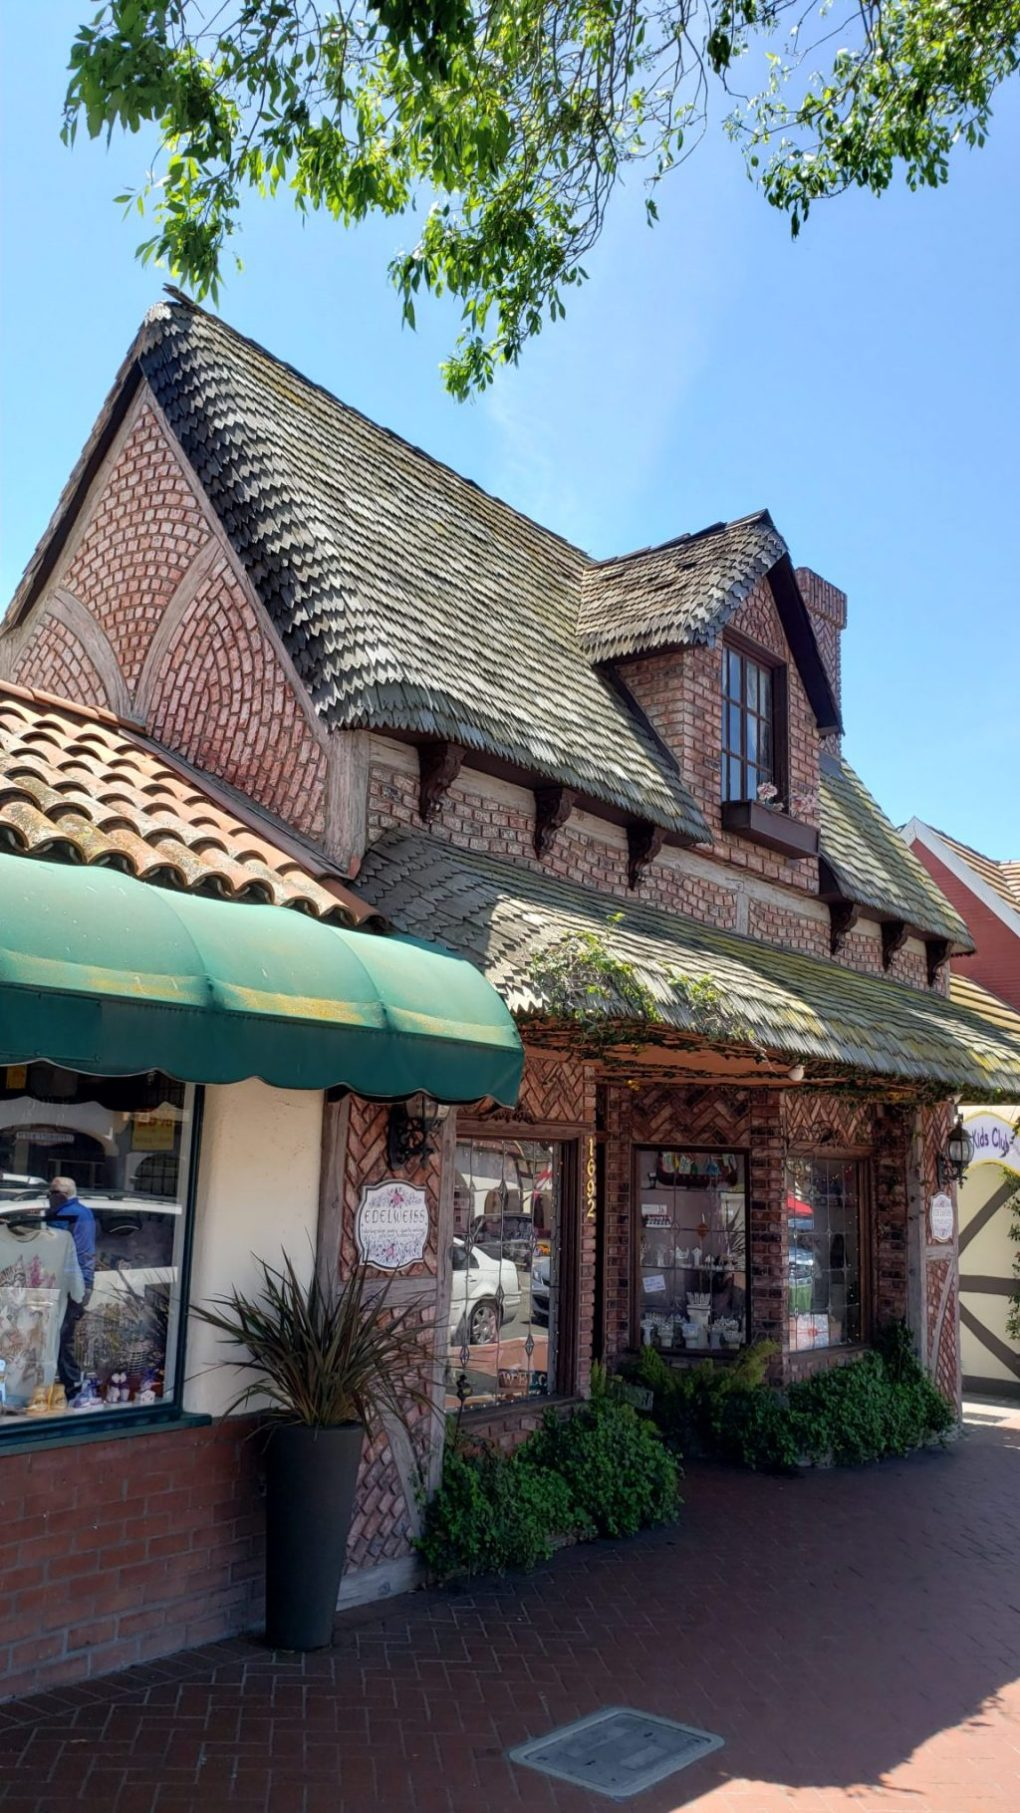 Edelweiss store in solvang